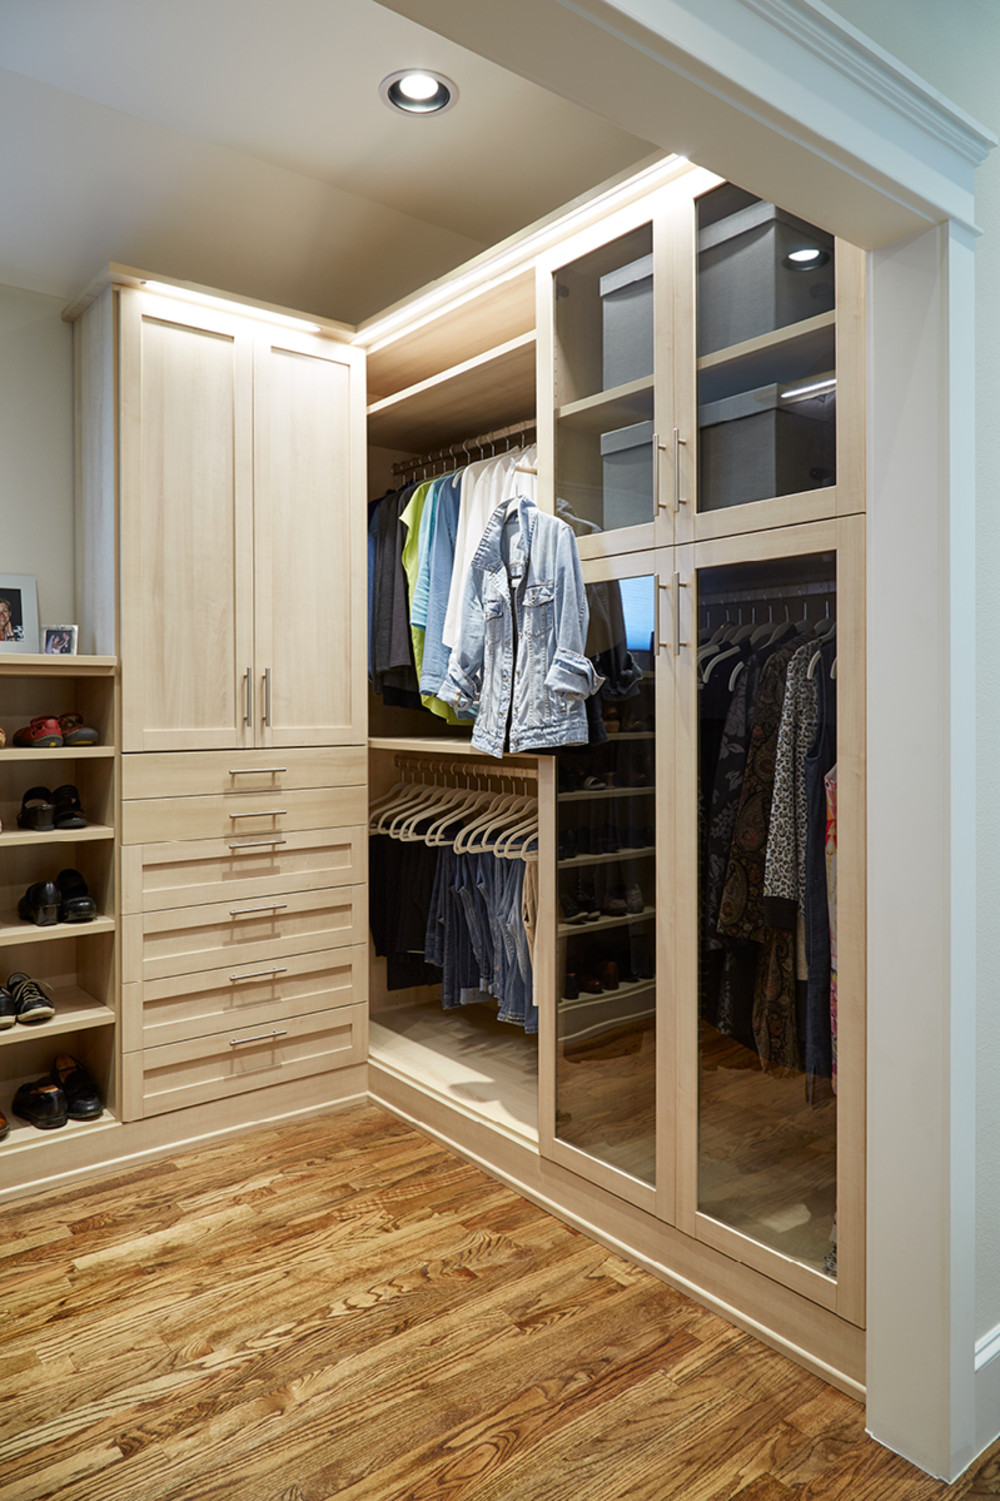 Gl Fronted Cabinets Protect Clothes From Dust While Extendable Valet Rods Make It Easy To Pull Together Outfits Featured Products Joy Mangano Ivory